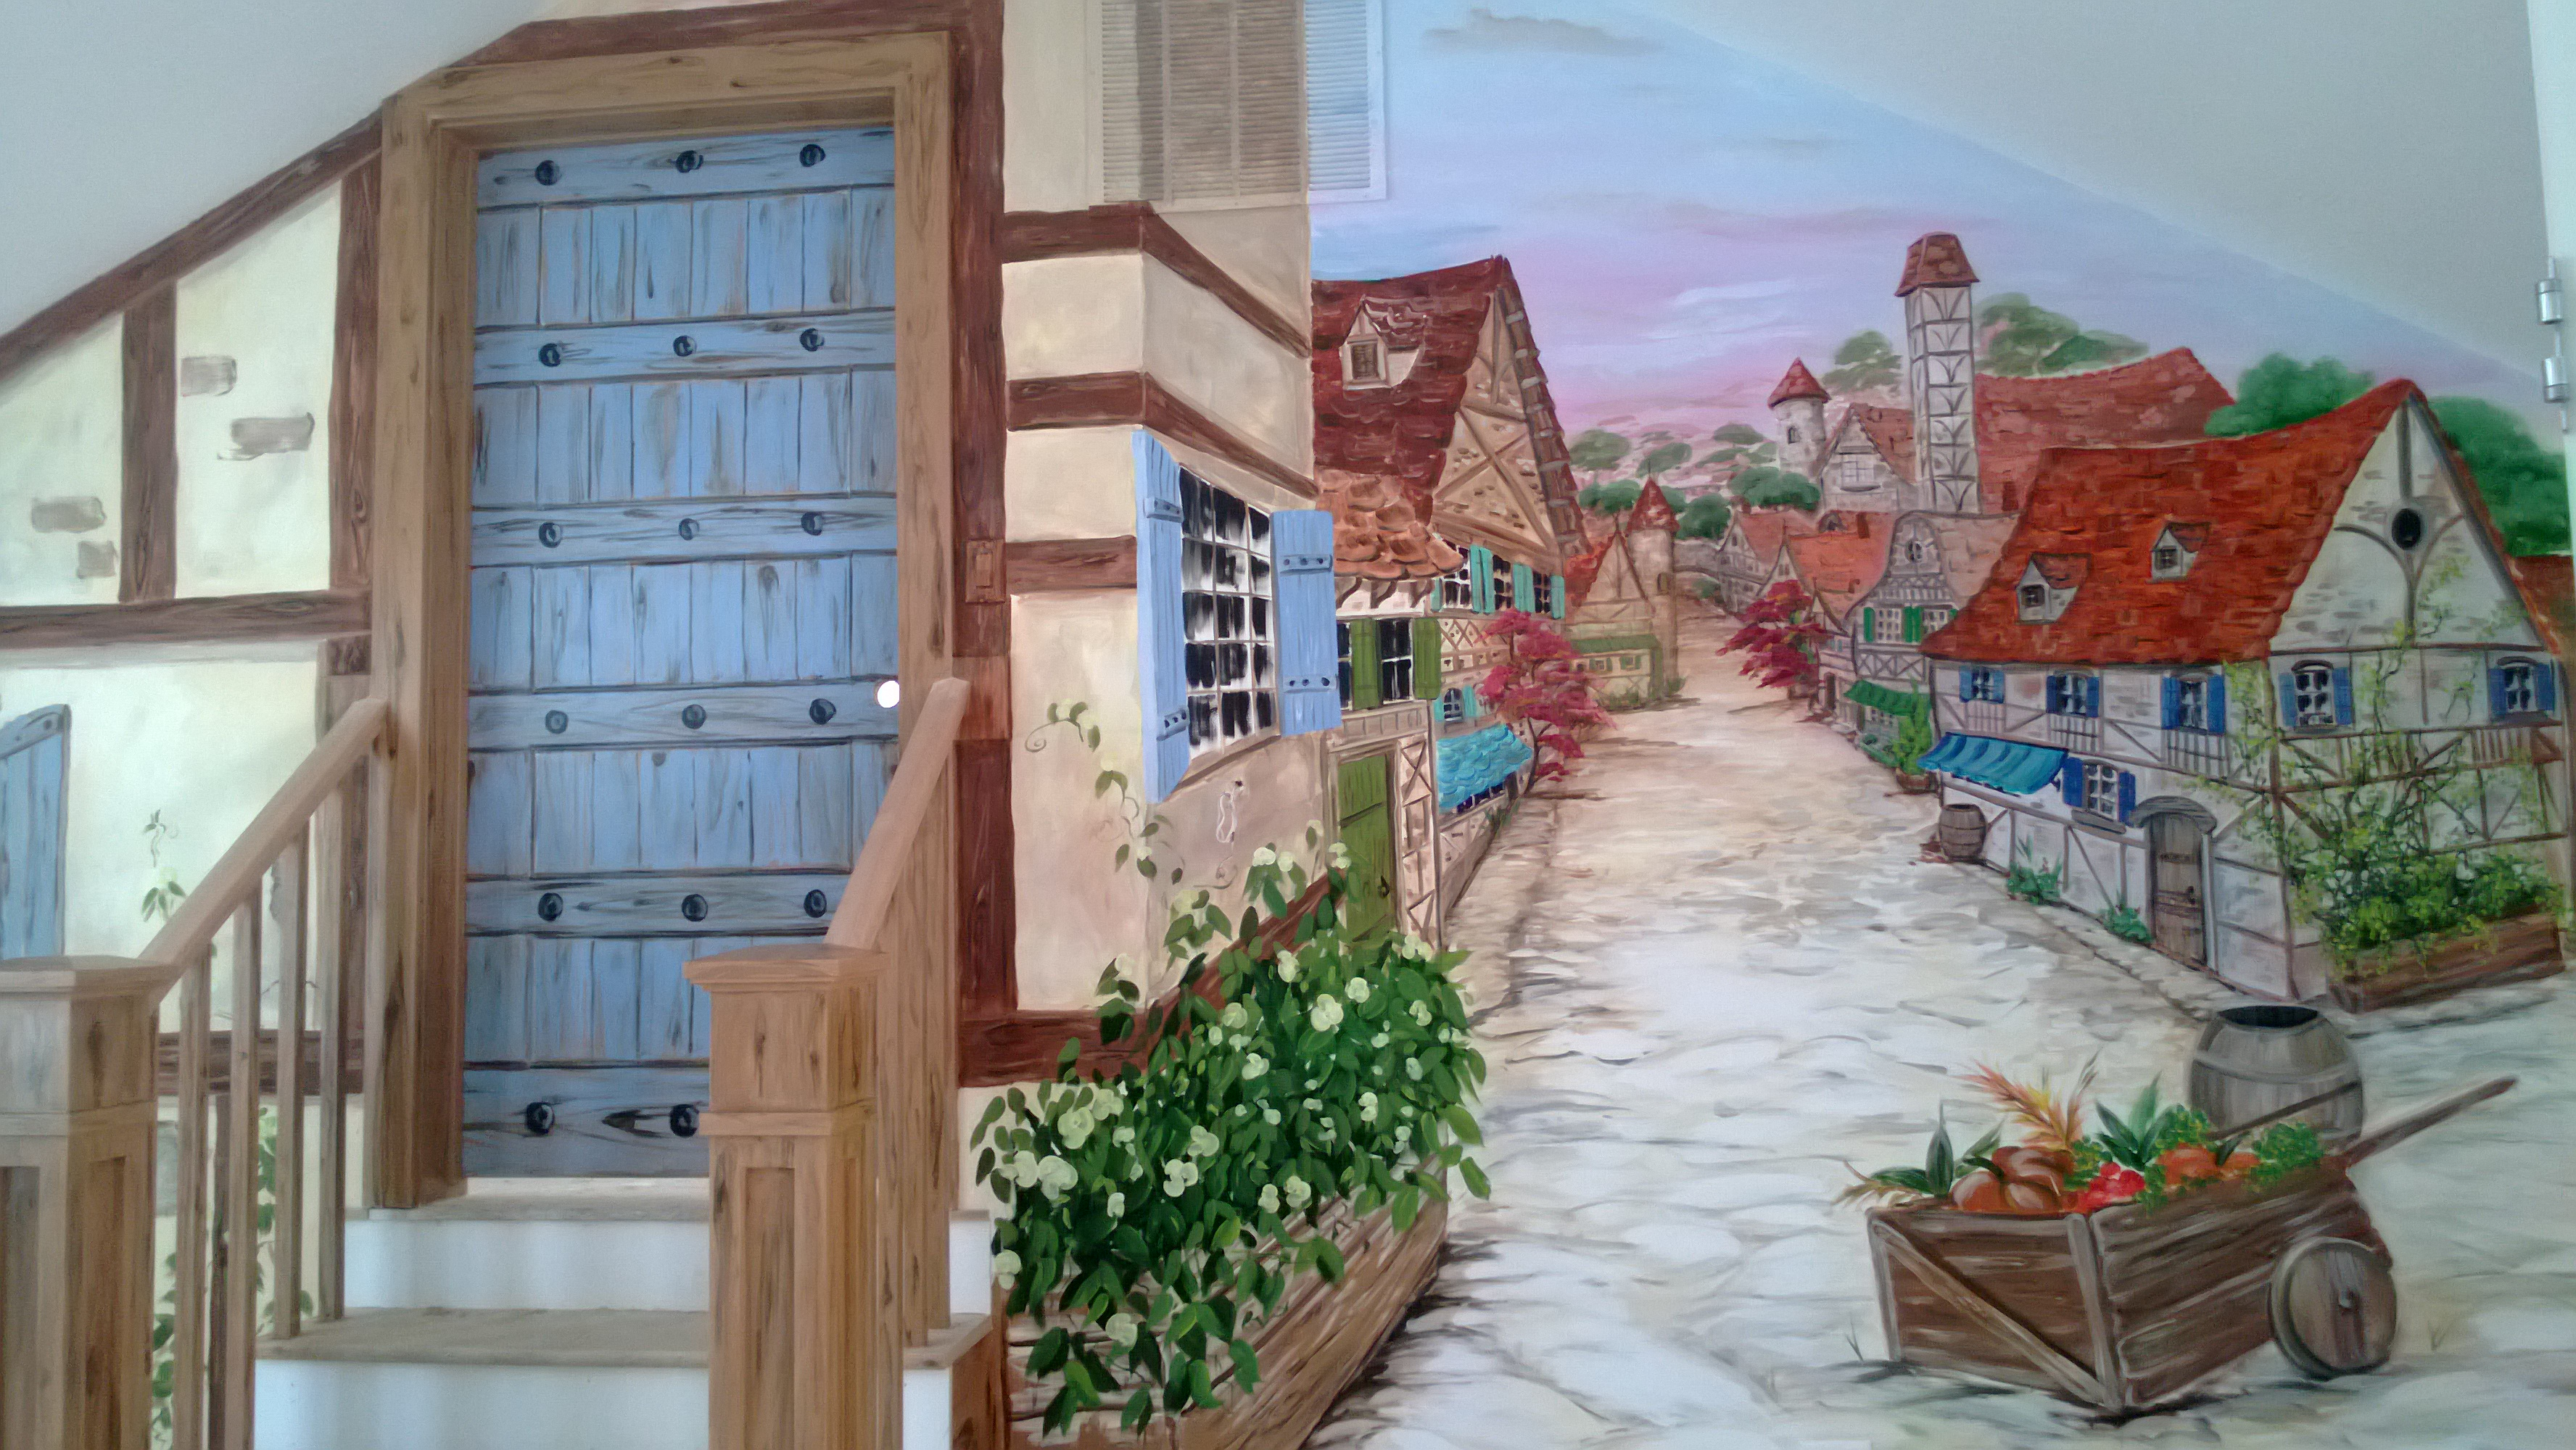 Belle's Quiet Village Mural